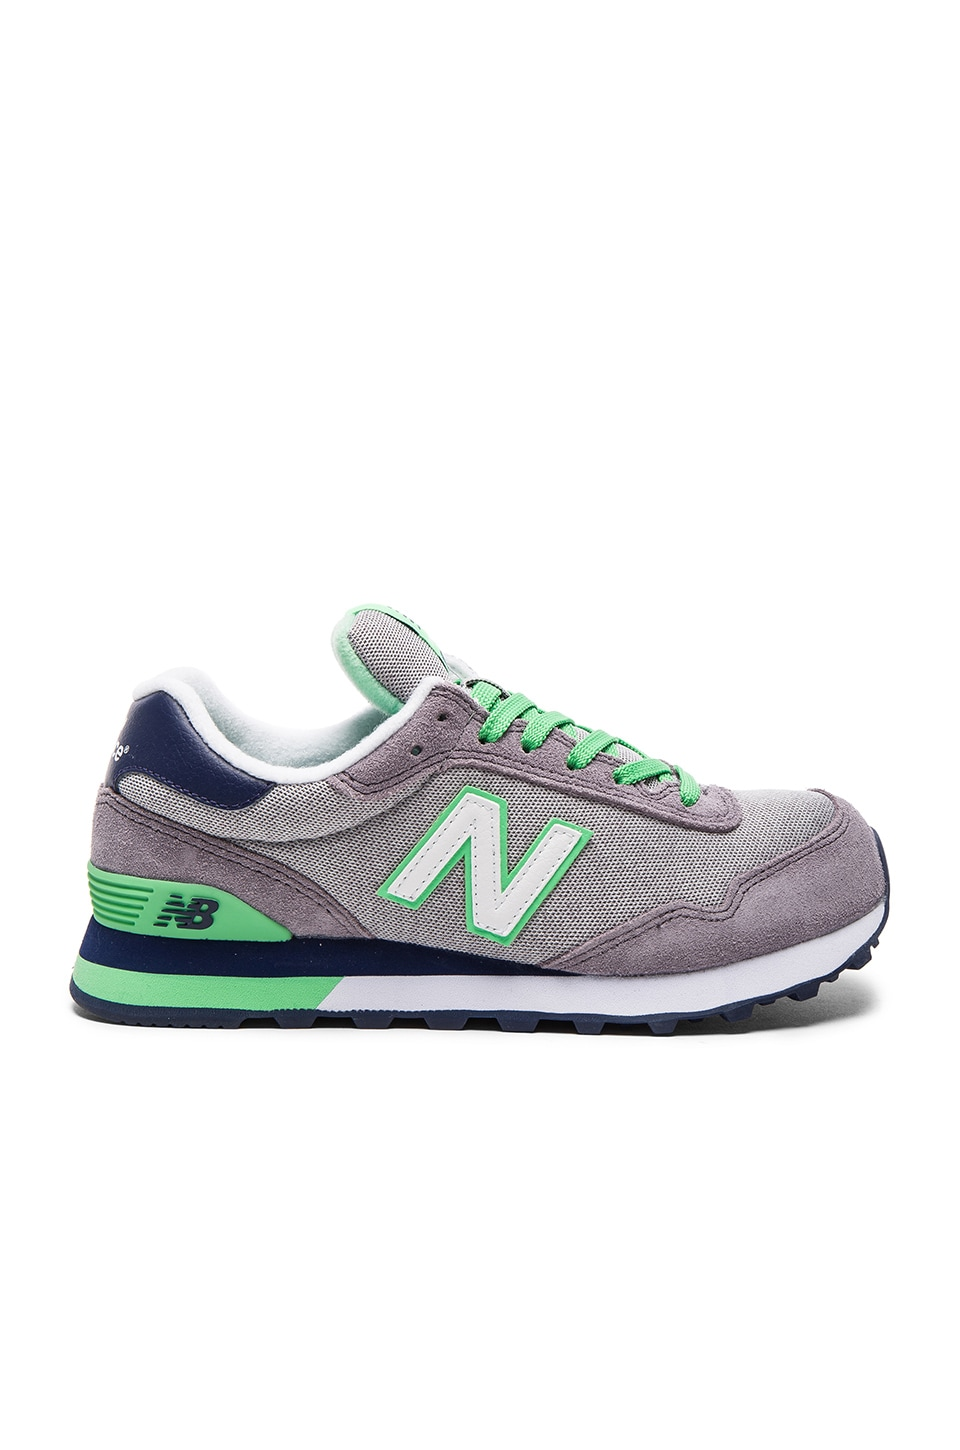 New Balance Classics Athleisure x NB Sneaker in Grey & Summer